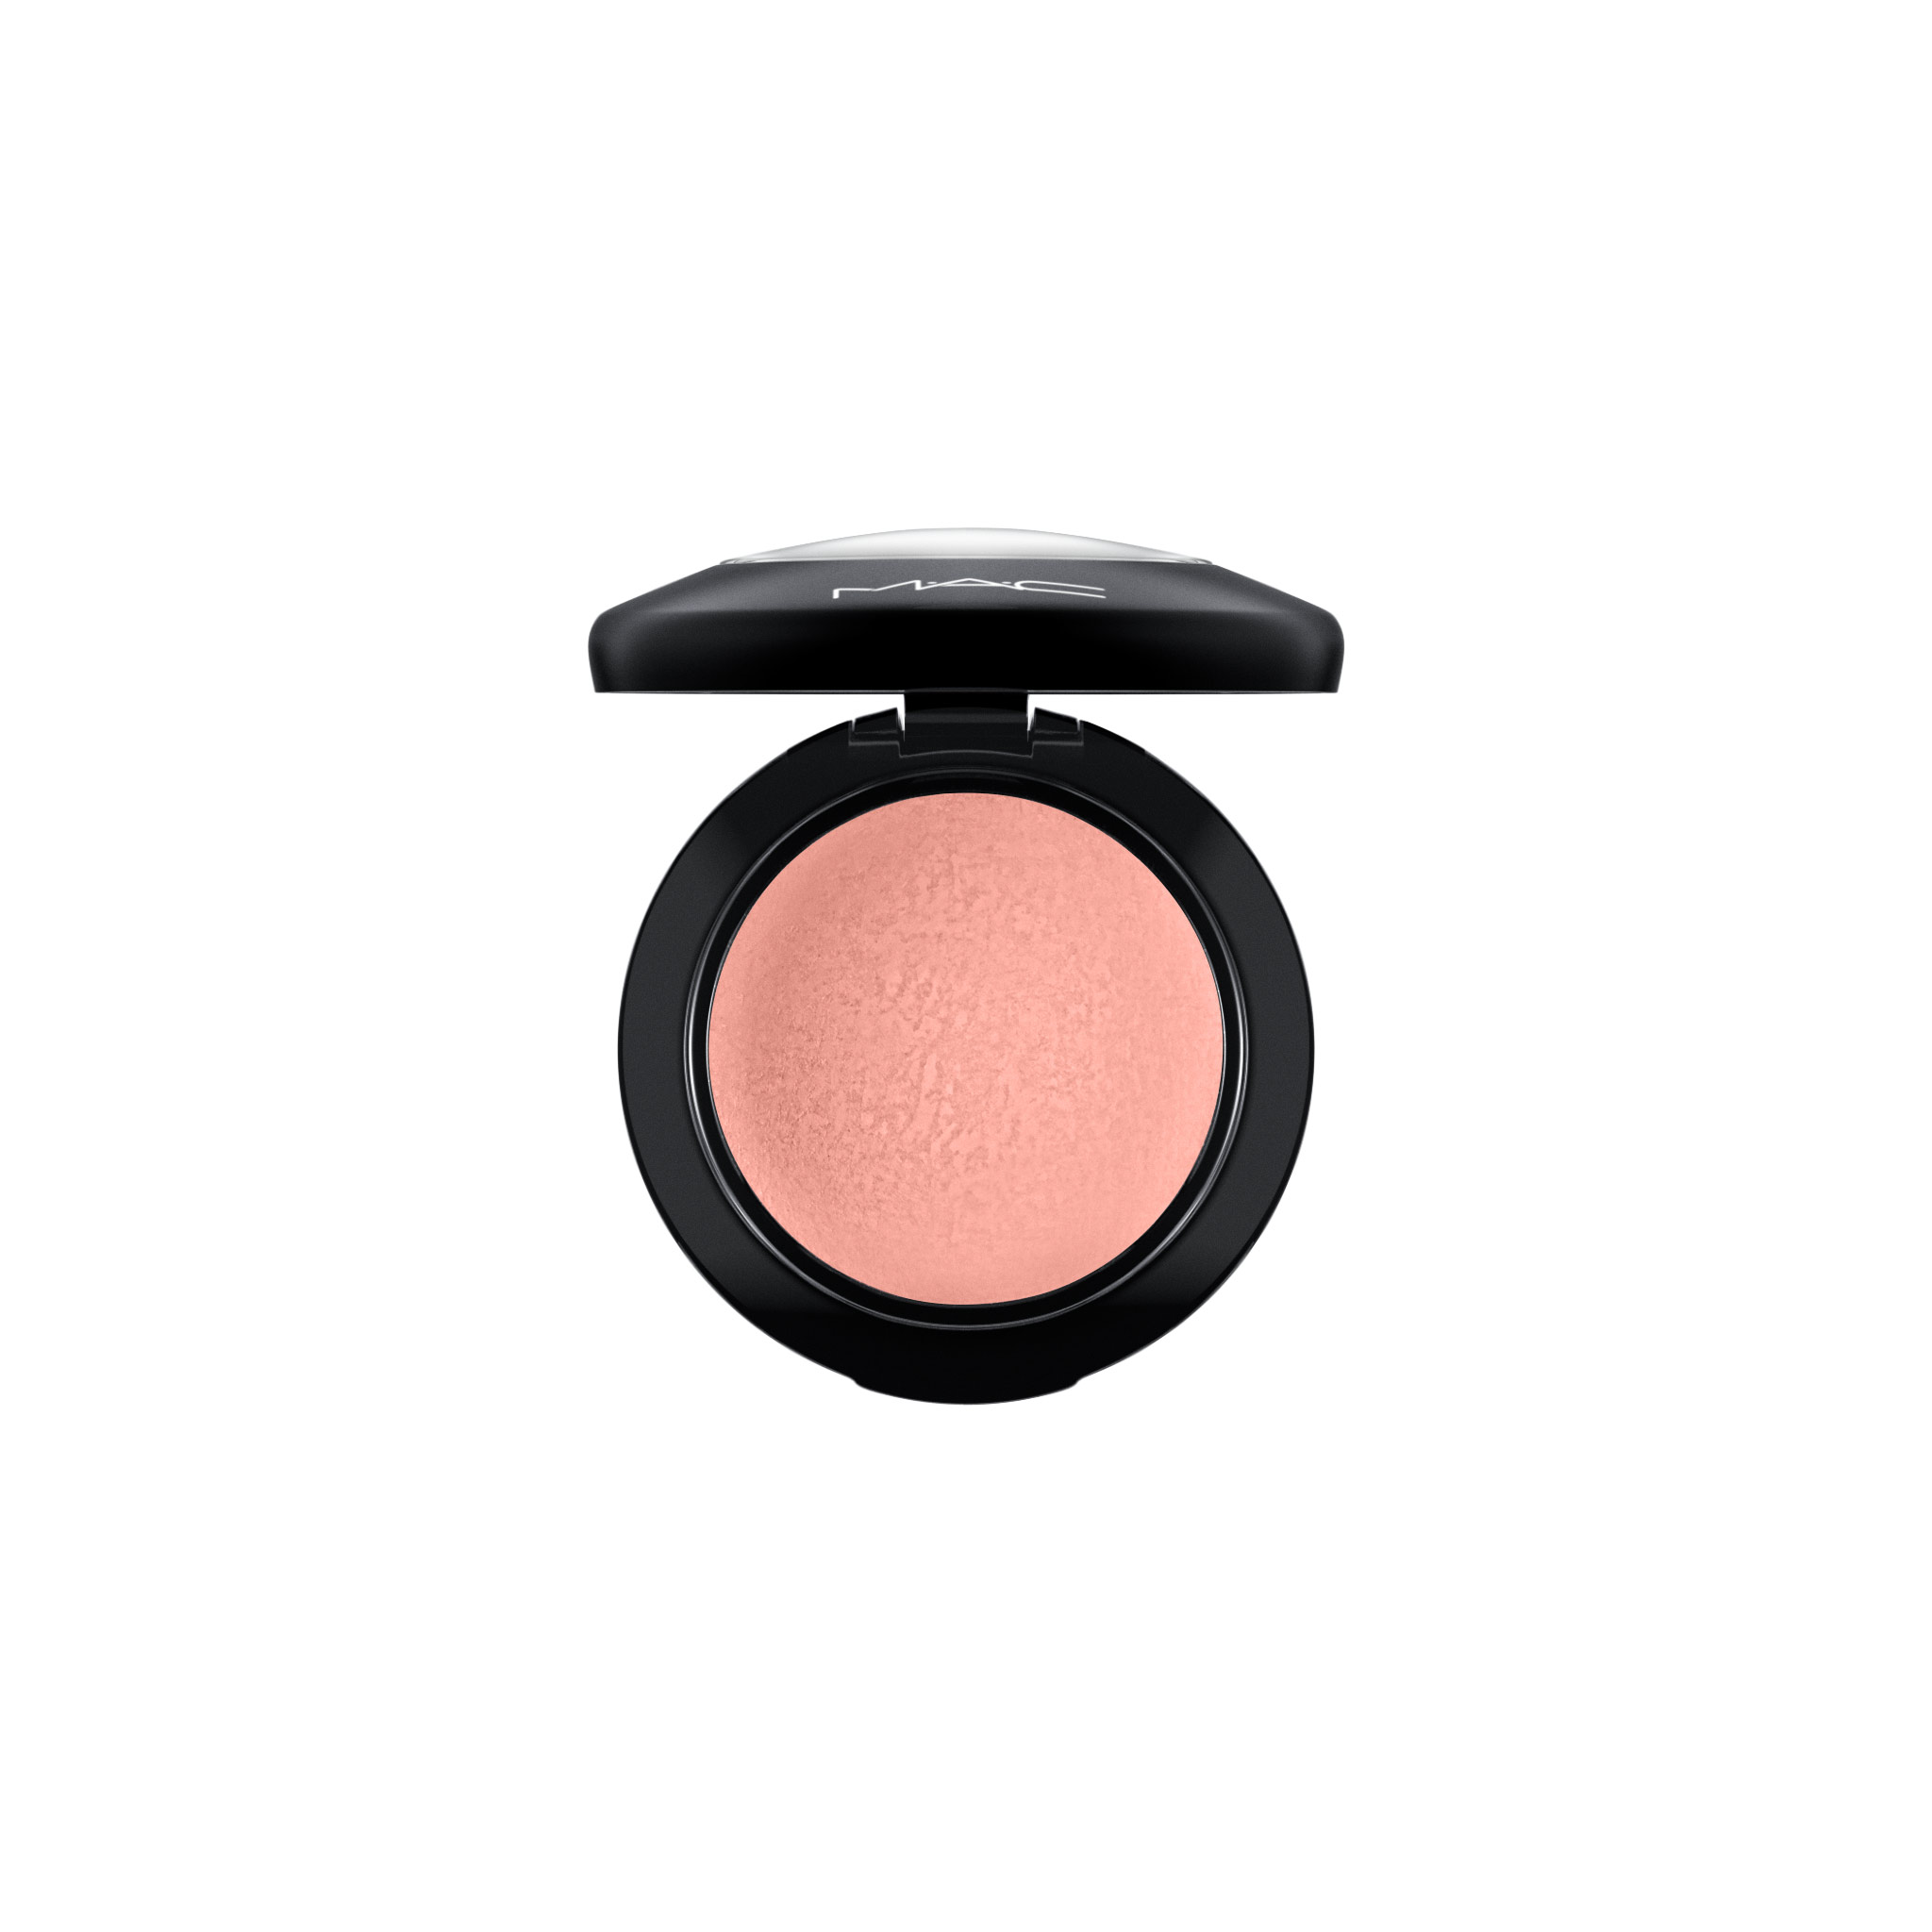 An image of MAC Mineralize Blush 3.5g Group 2 - SWEET ENOUGH